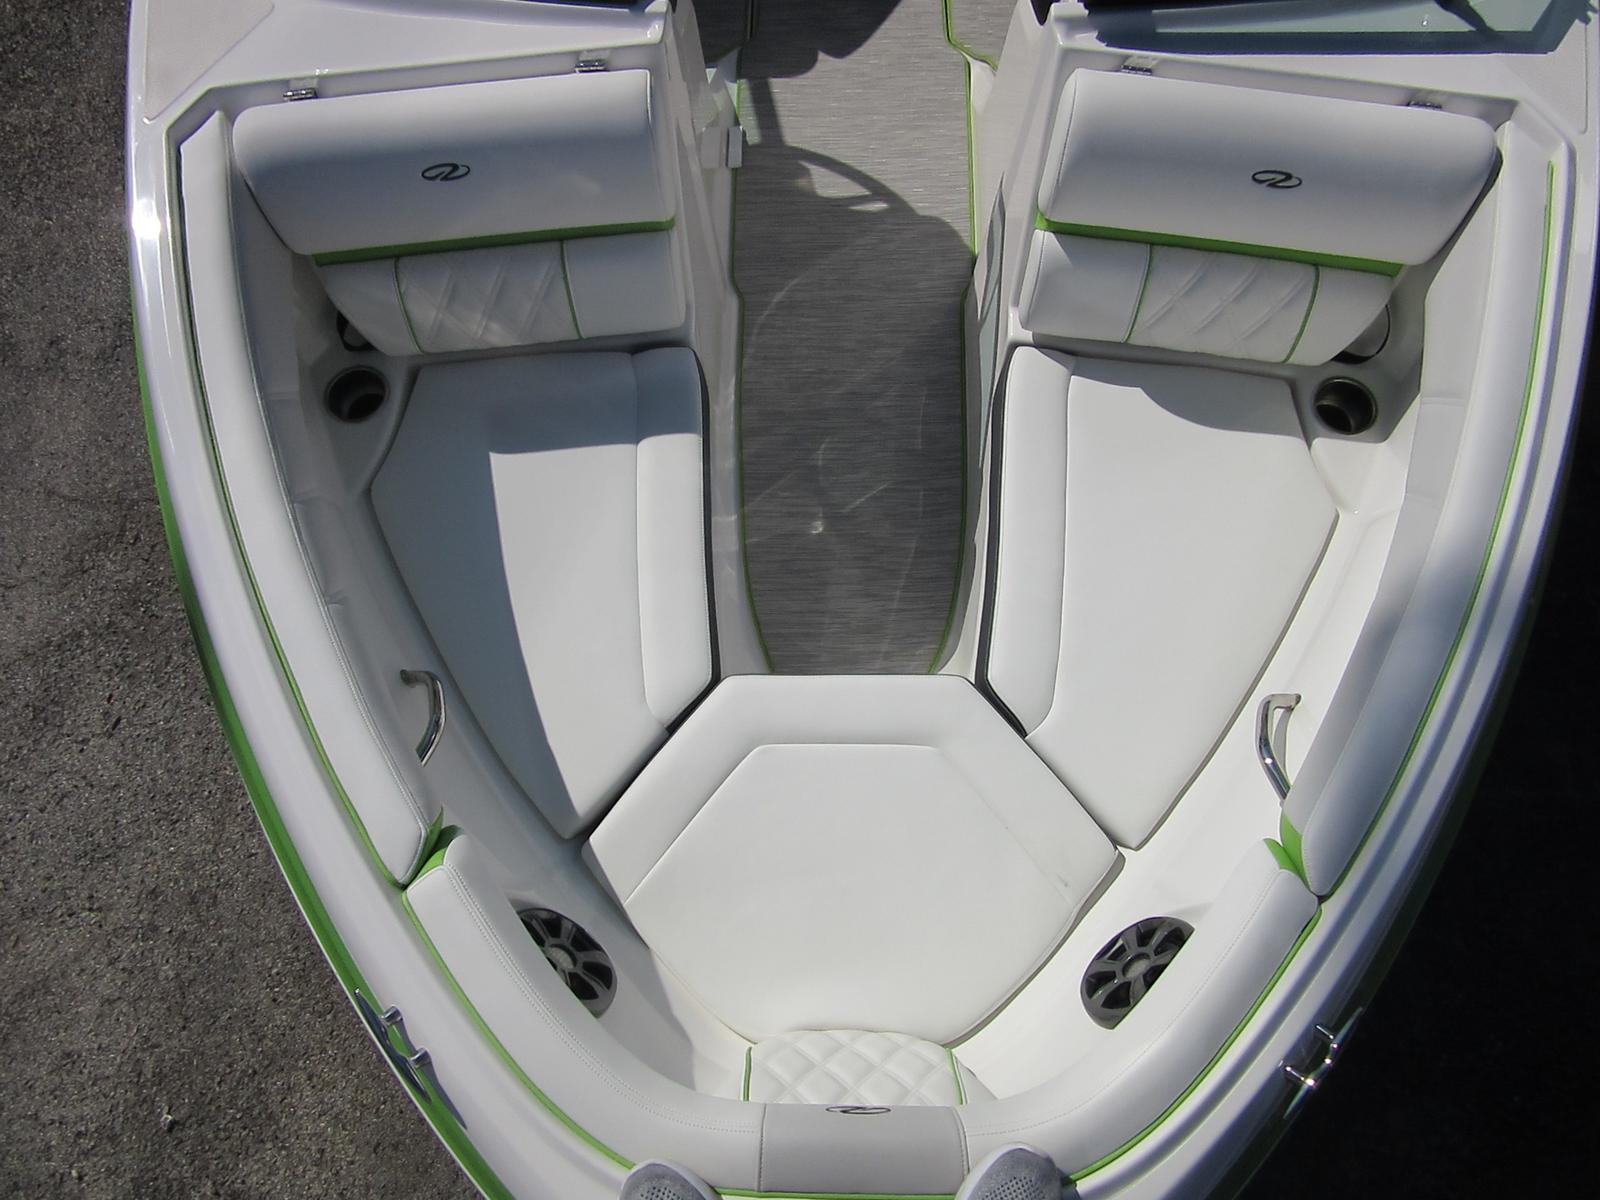 2018 regal 2000 esx for sale in lewisville, tx | phil dill boats